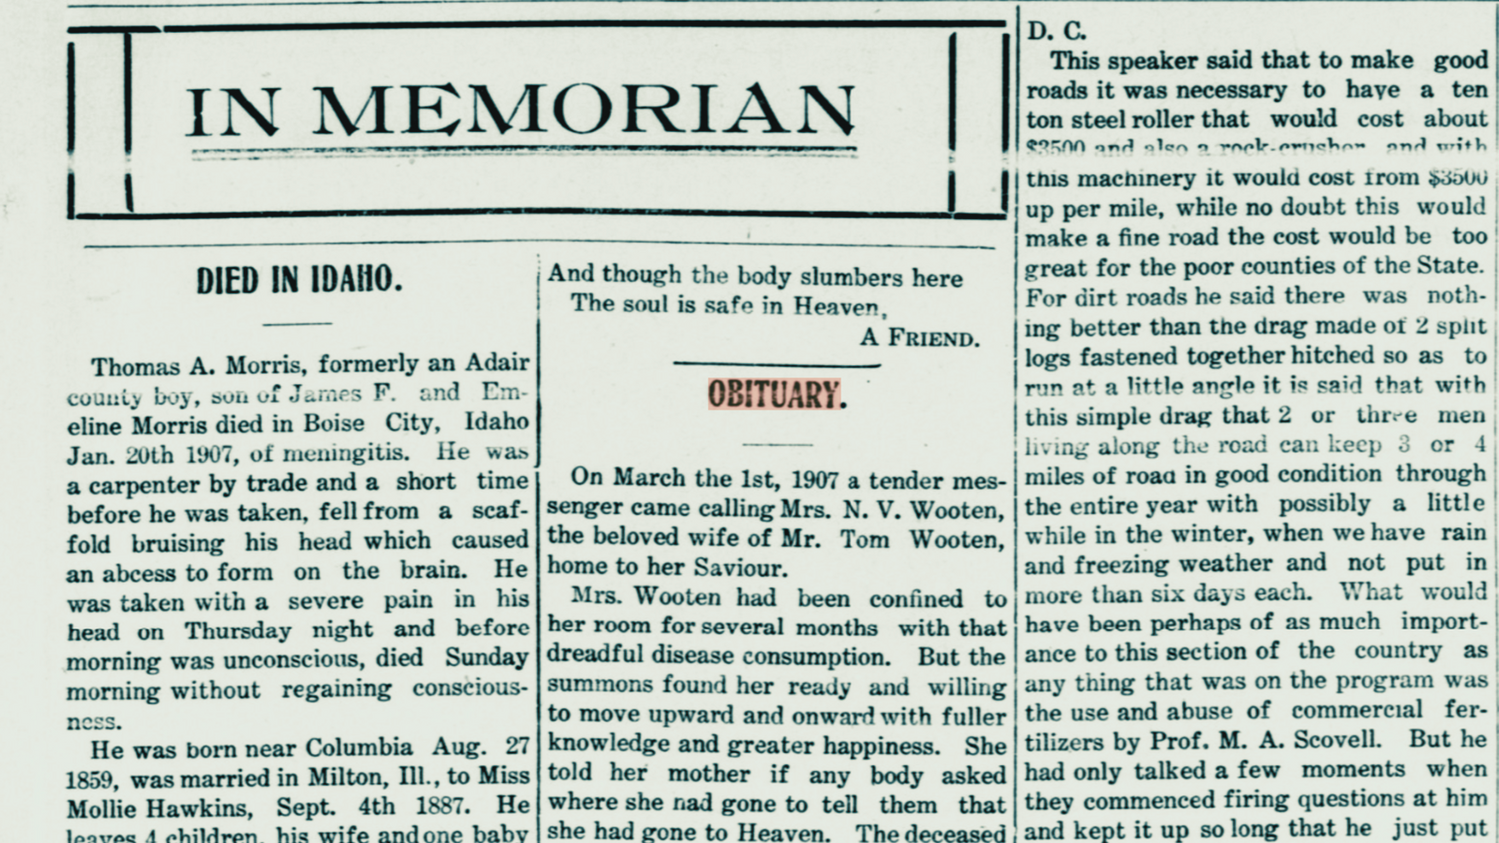 Our Tips for Finding Your Kentucky Ancestor's Death Notice